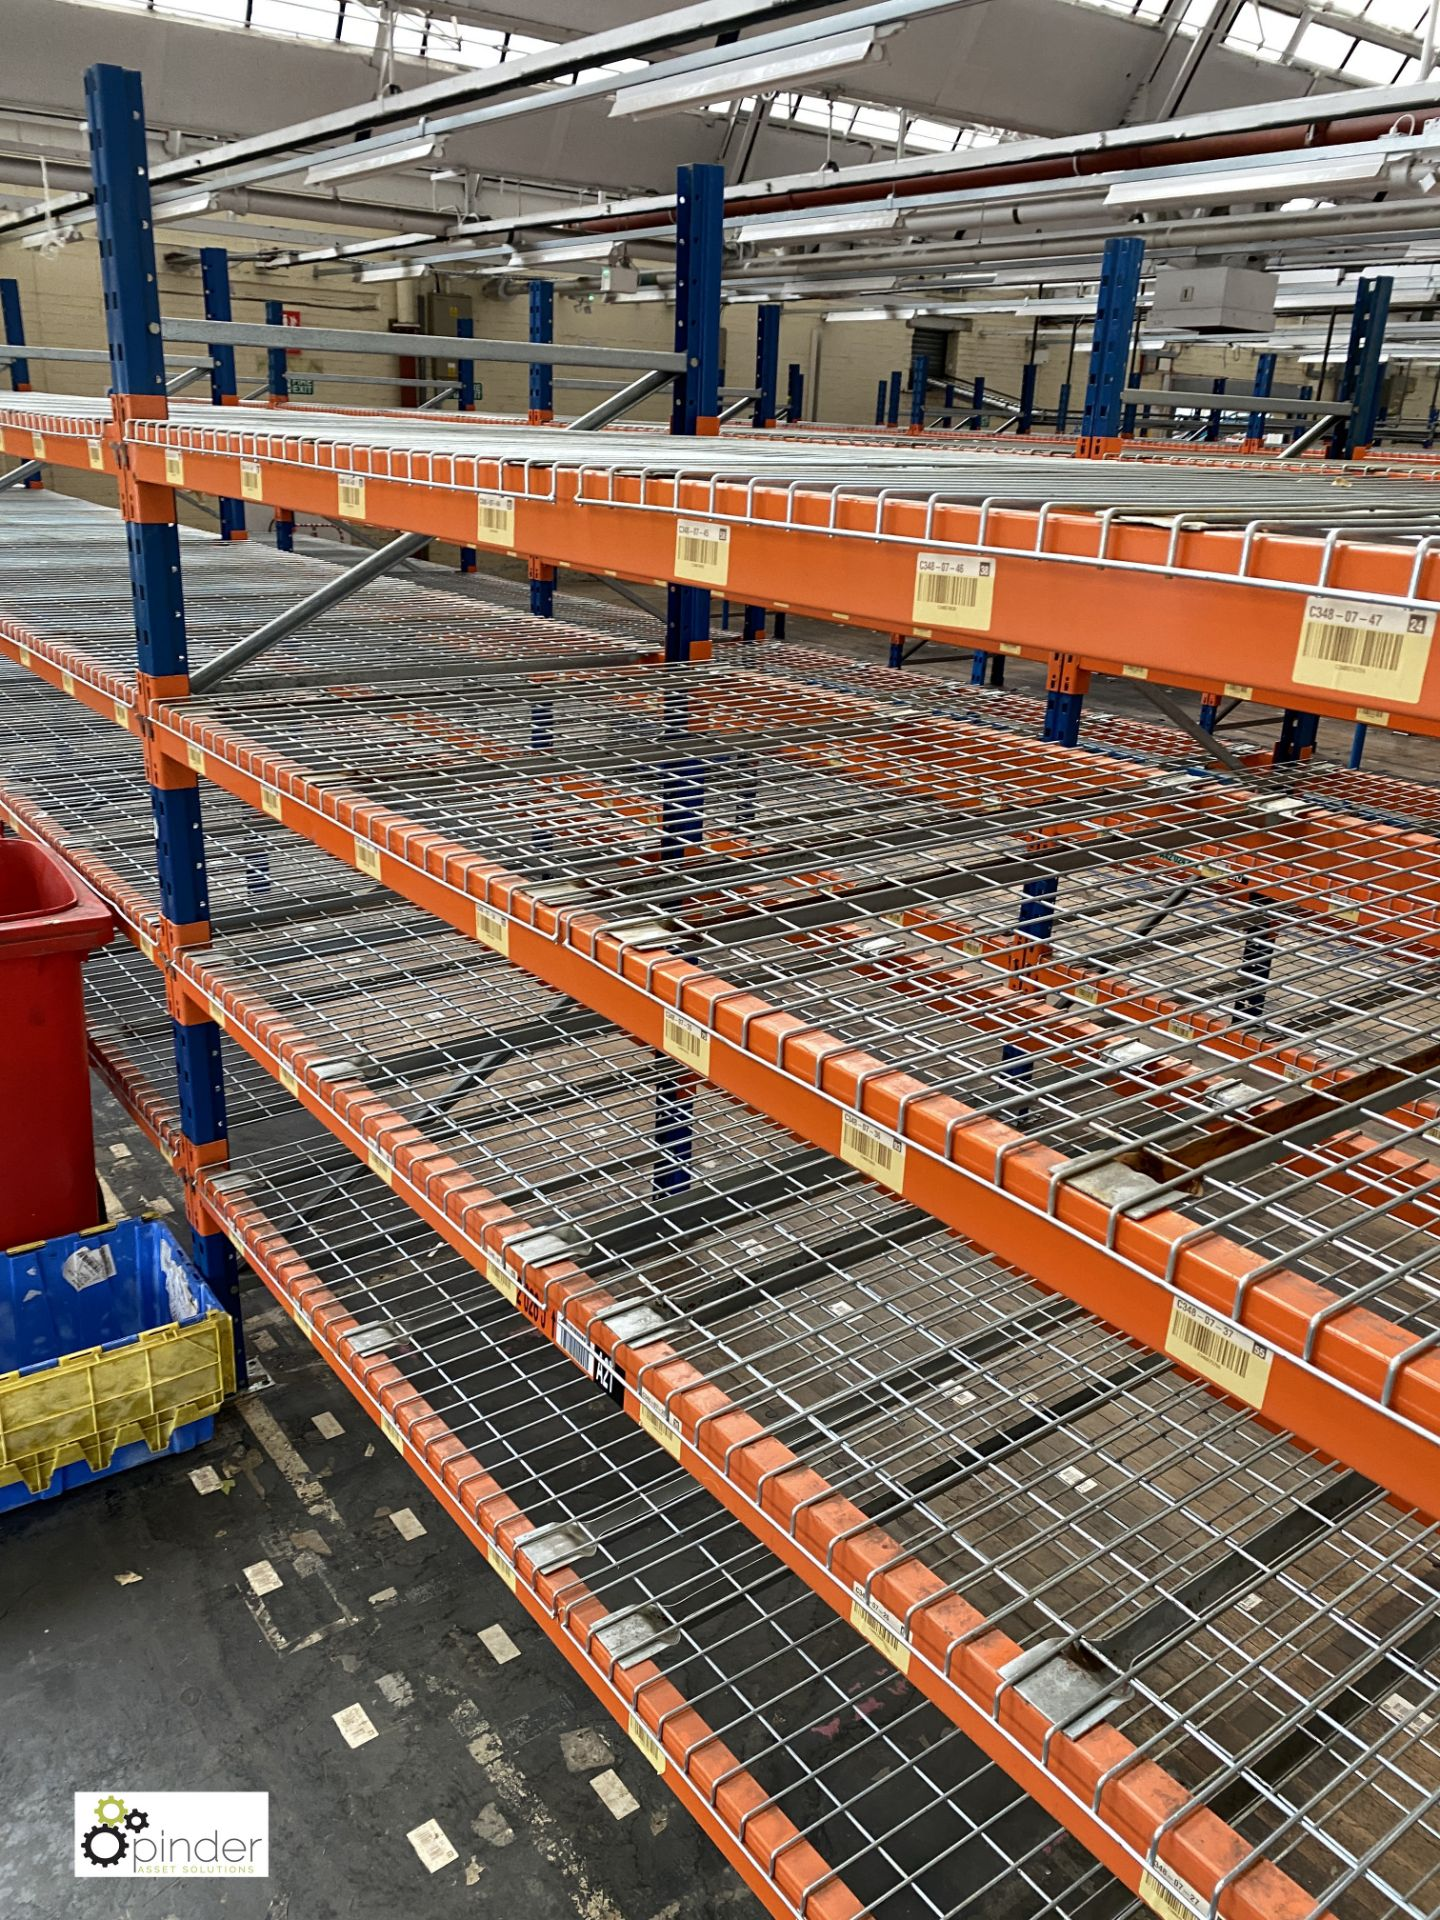 4 bays PSS 2K85 16 boltless Stock Racking, comprising 5 uprights 2400mm x 1200mm, 32 beams 2700mm, - Image 2 of 4